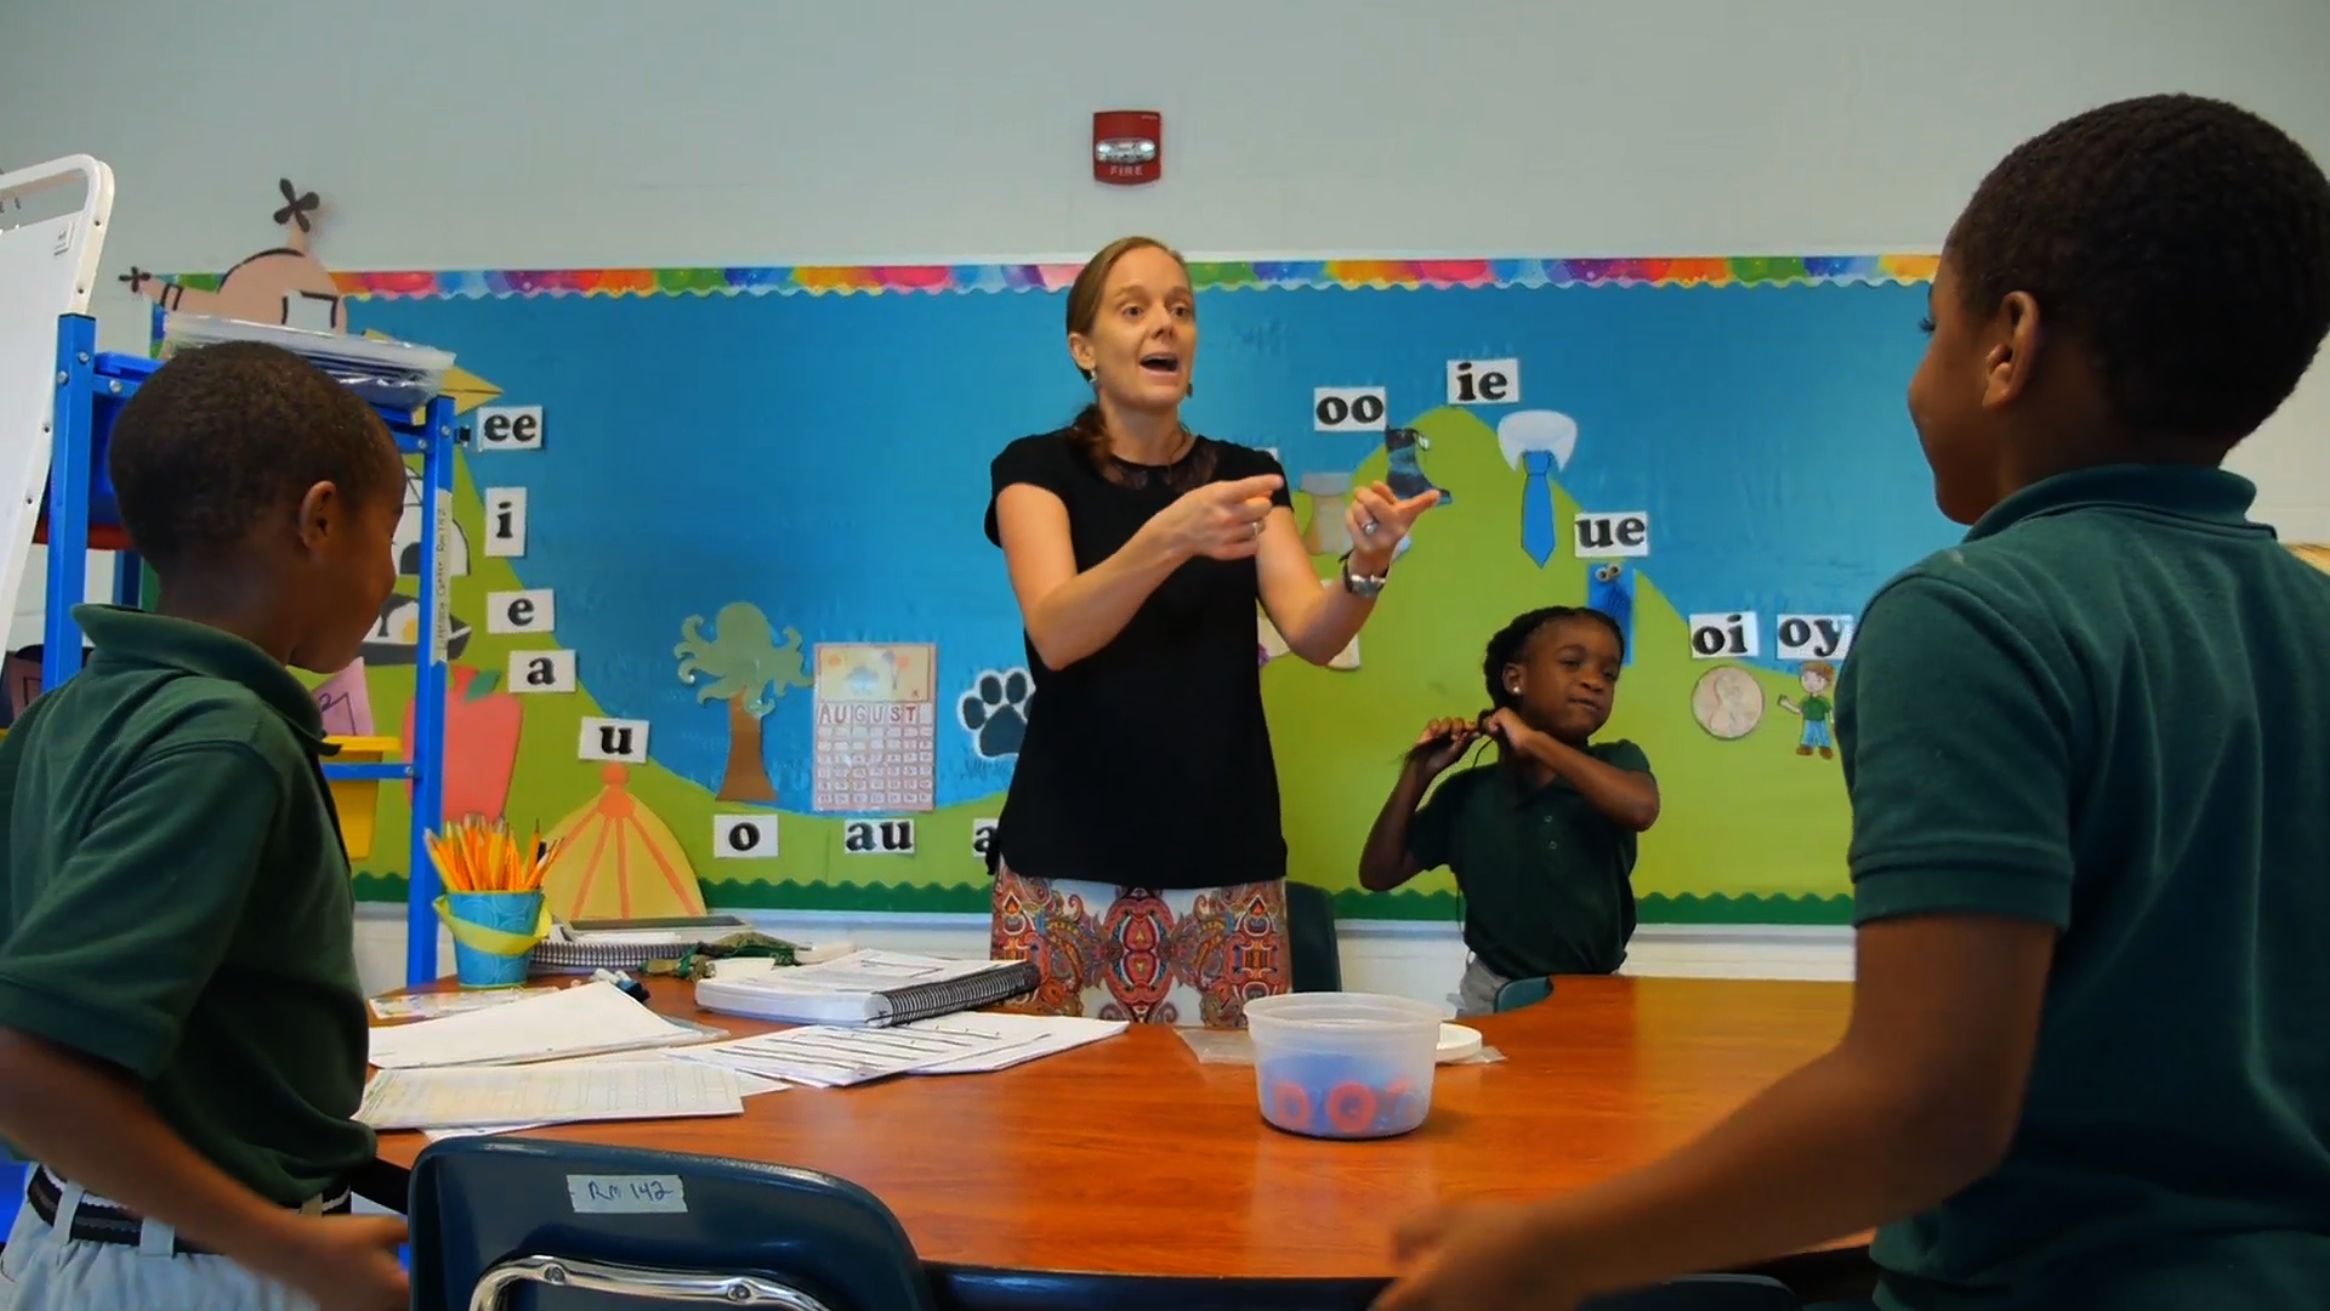 A teacher is working with her primary students in a classroom.